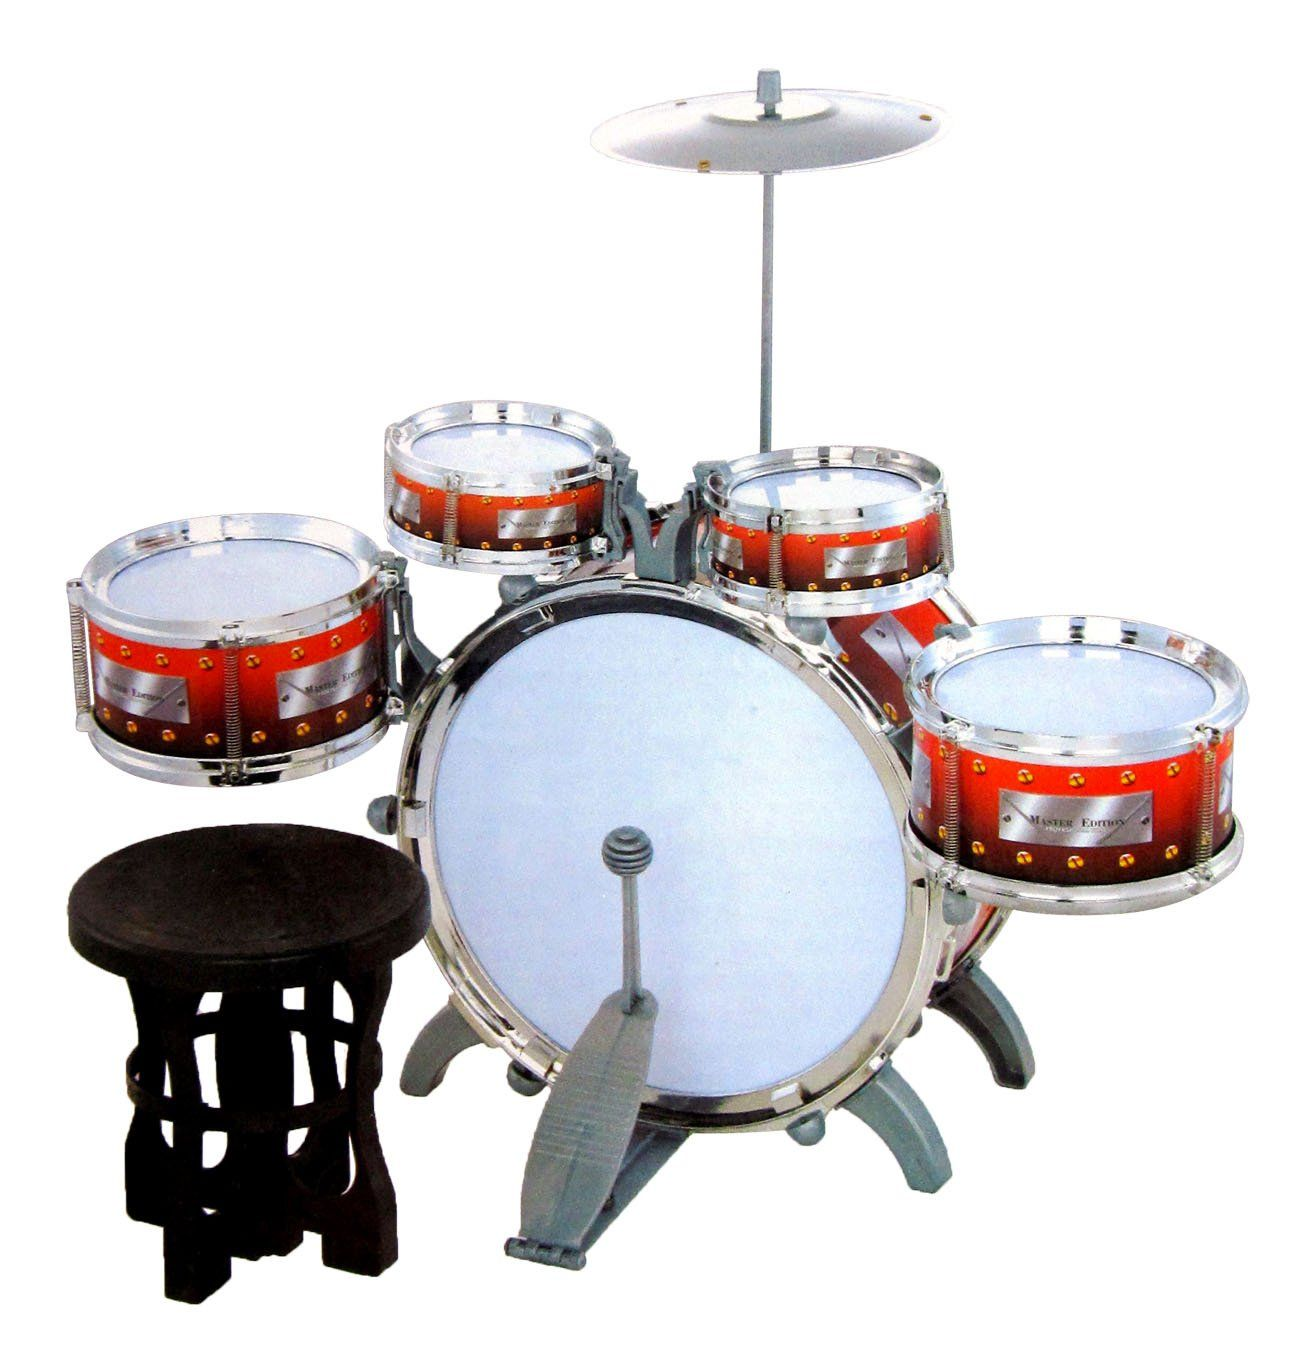 Jazz Drum Set With Chair Music Toy Instrument For Kids 10 Pc 10